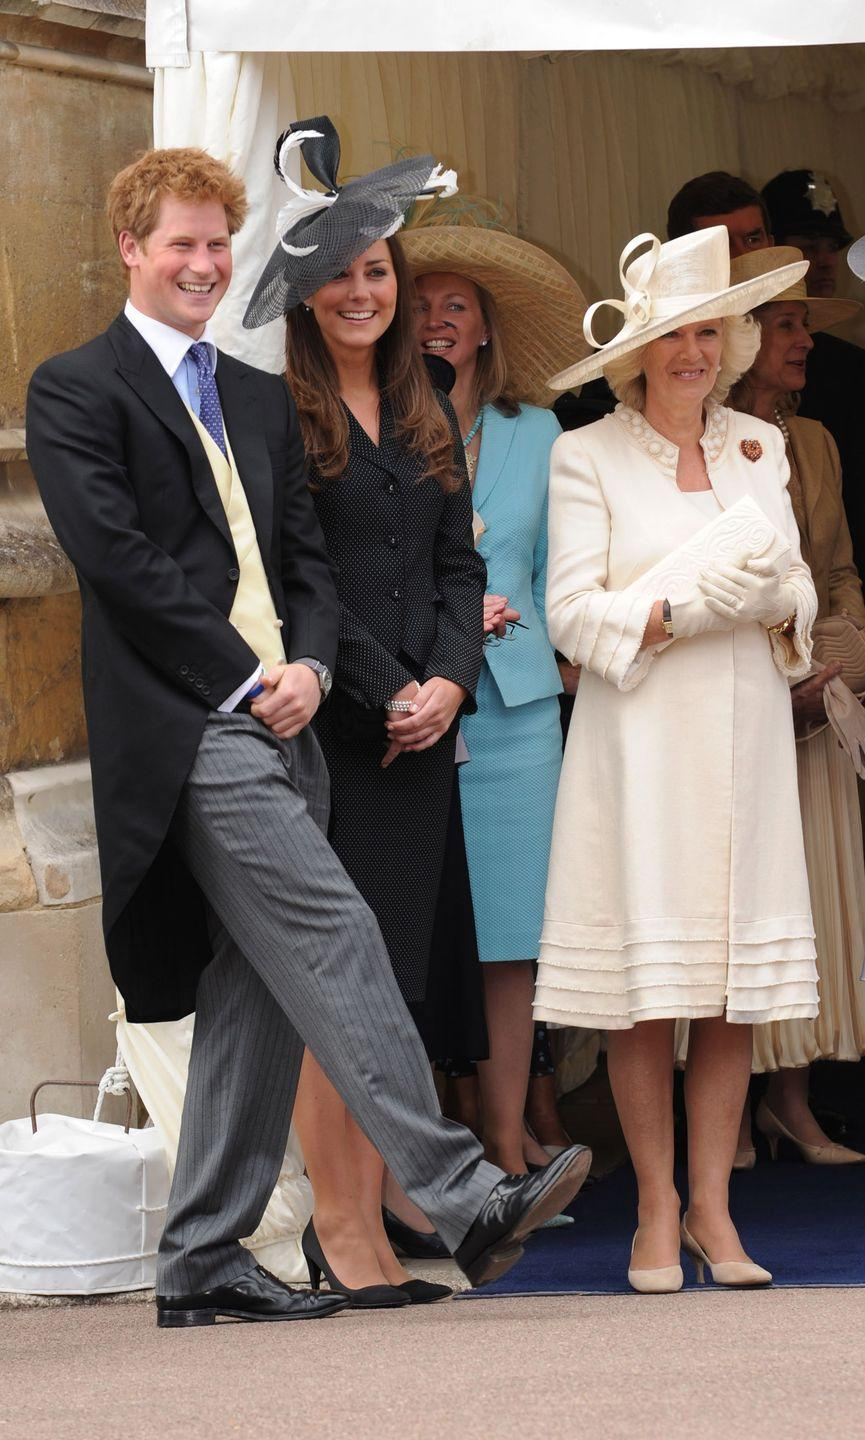 <p>Prince Harry, Kate, and Duchess Camilla all laughed as they watched the Order of the Garter procession at Windsor Castle. Prince Harry and Kate had a sibling-like bond since the beginning.</p>